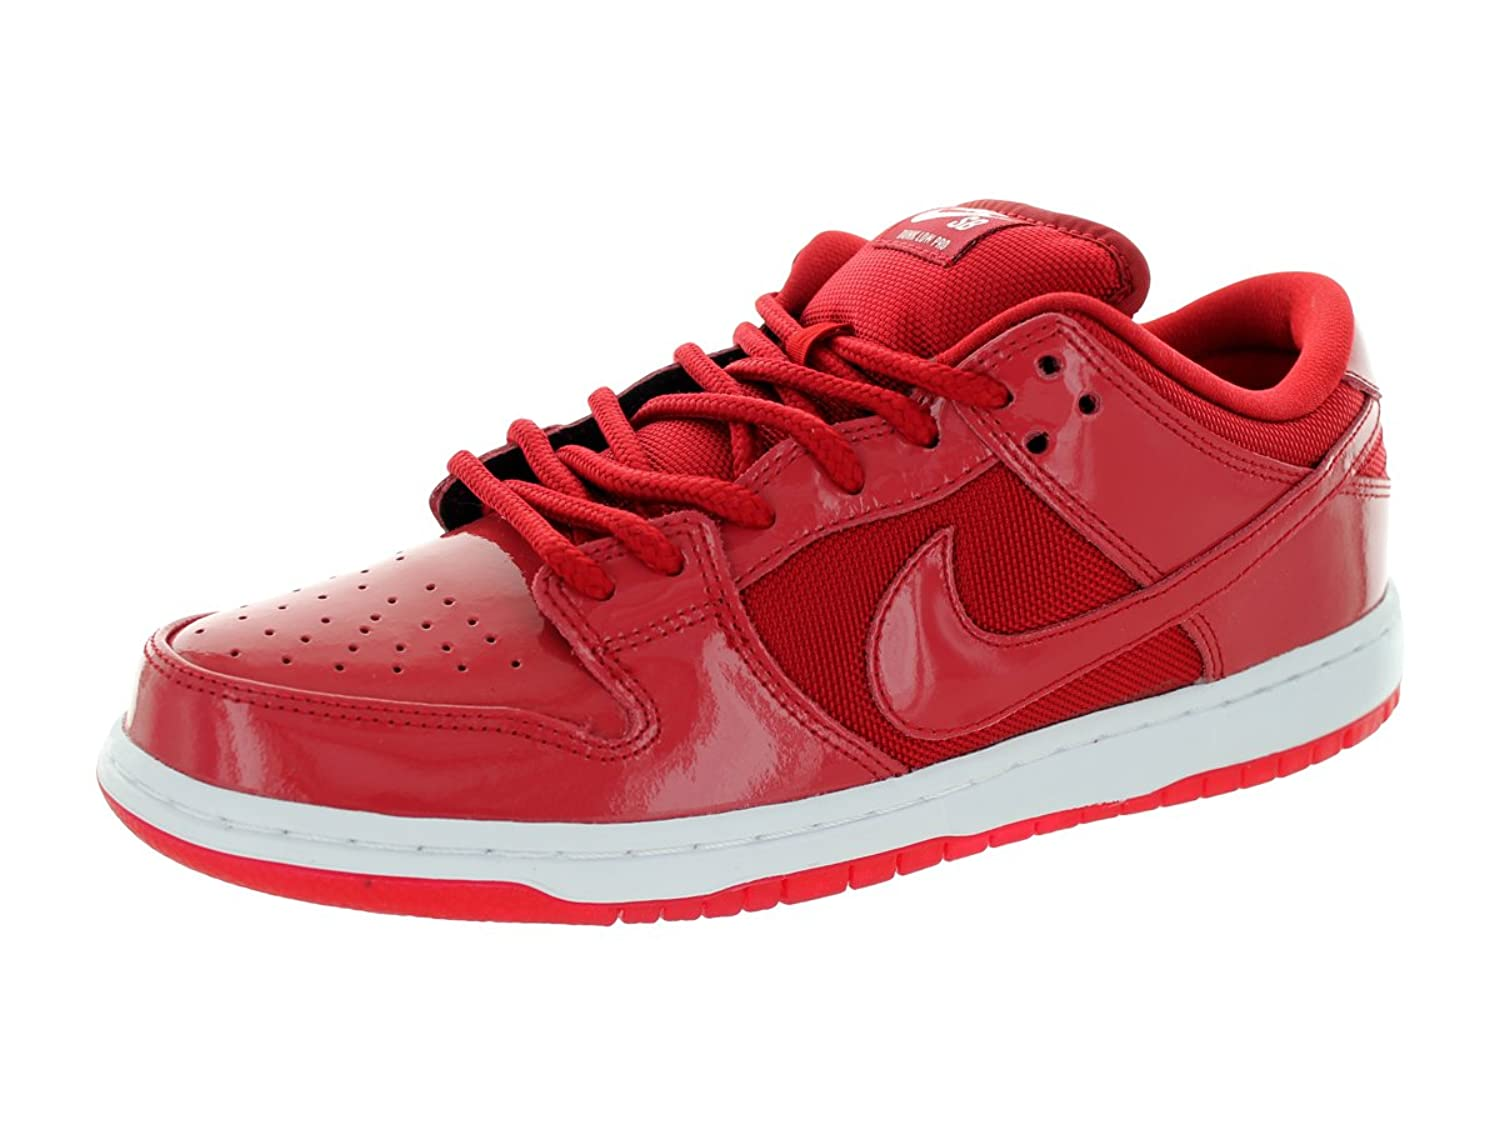 NIKE DUNK LOW PRO SB RED SPACE JAM - 304292-616  6.5